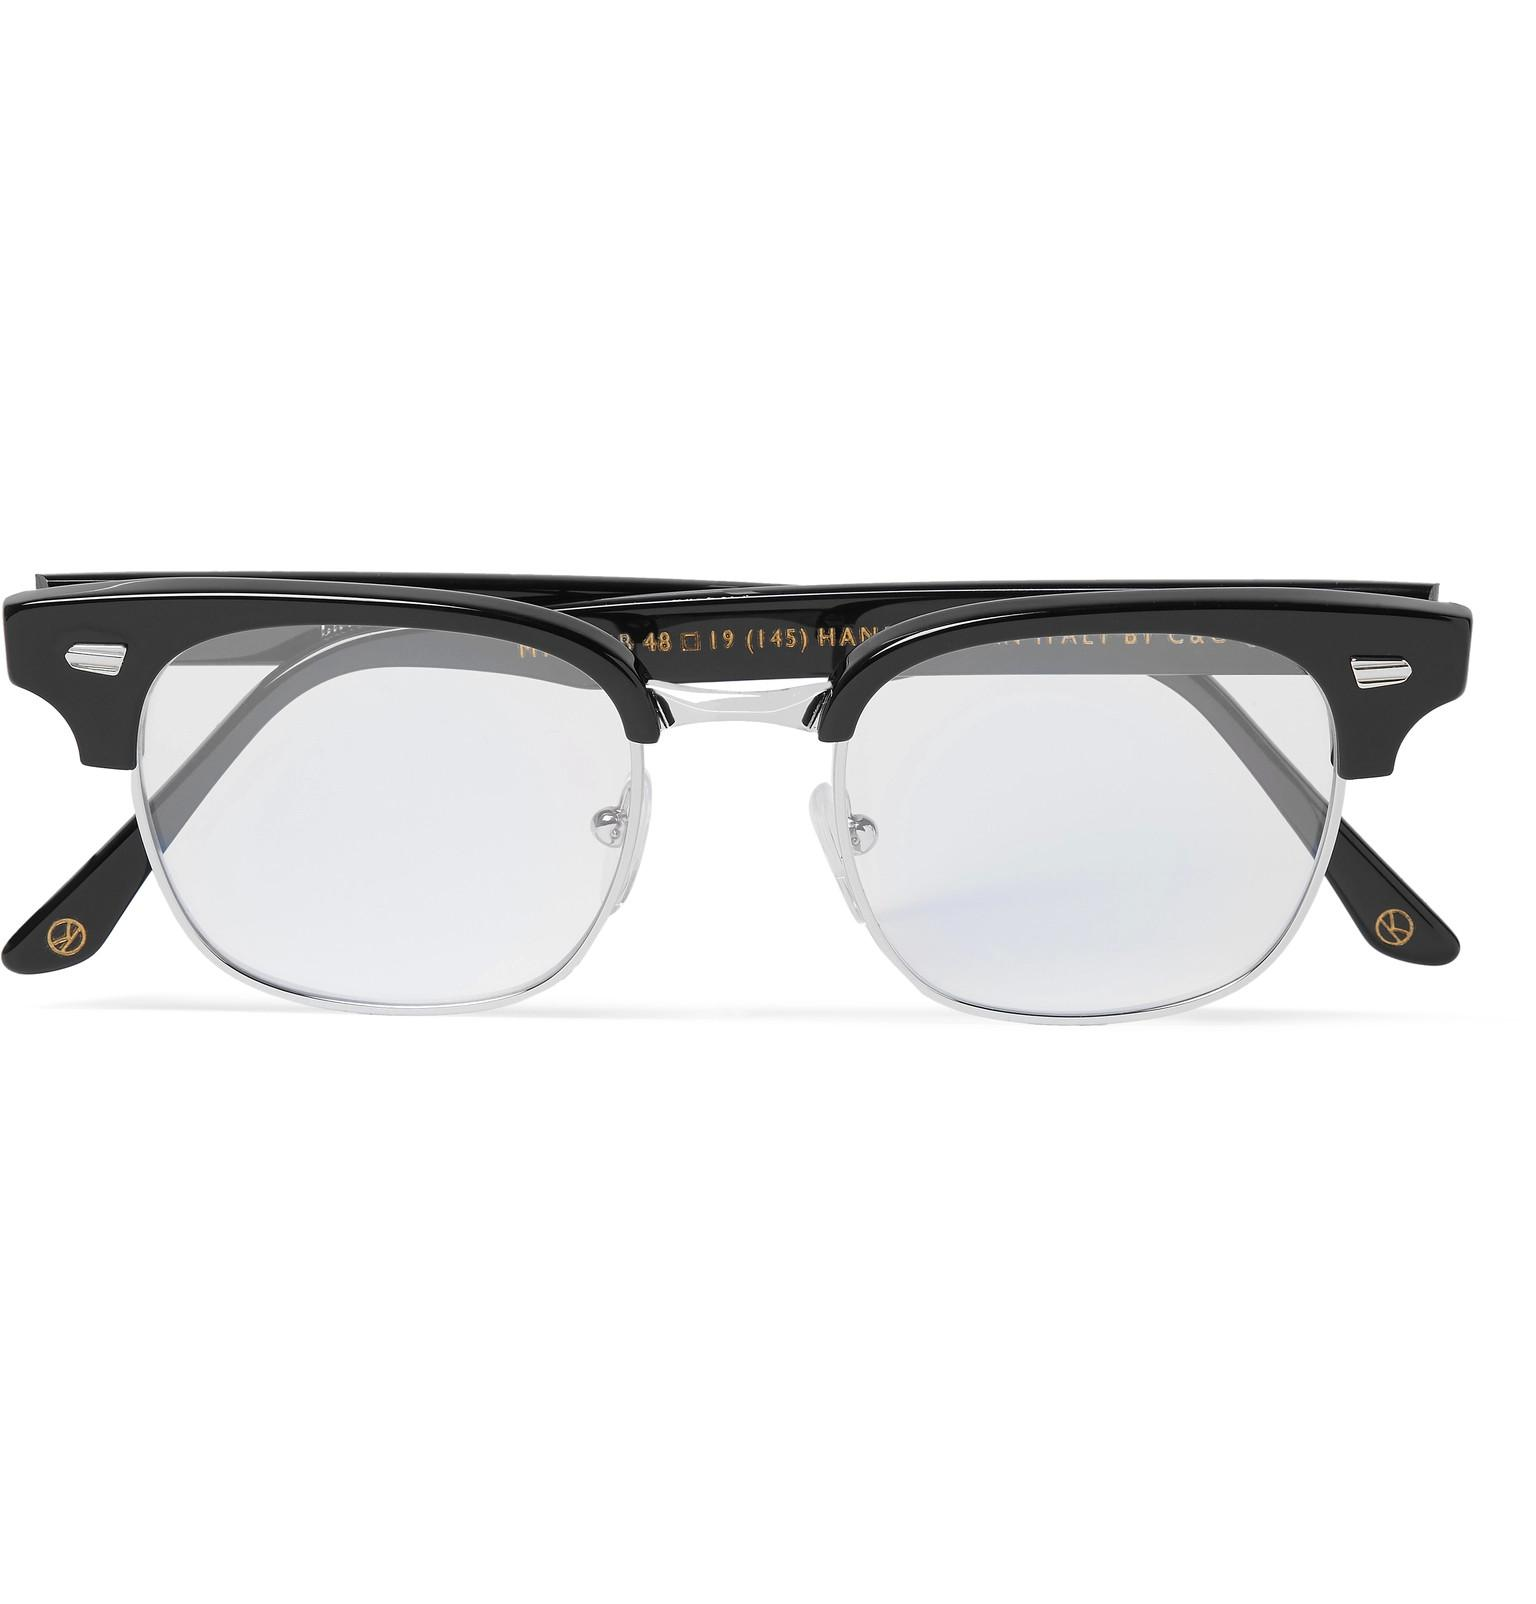 + Cutler And Gross Square-frame Tortoiseshell Acetate Sunglasses Kingsman